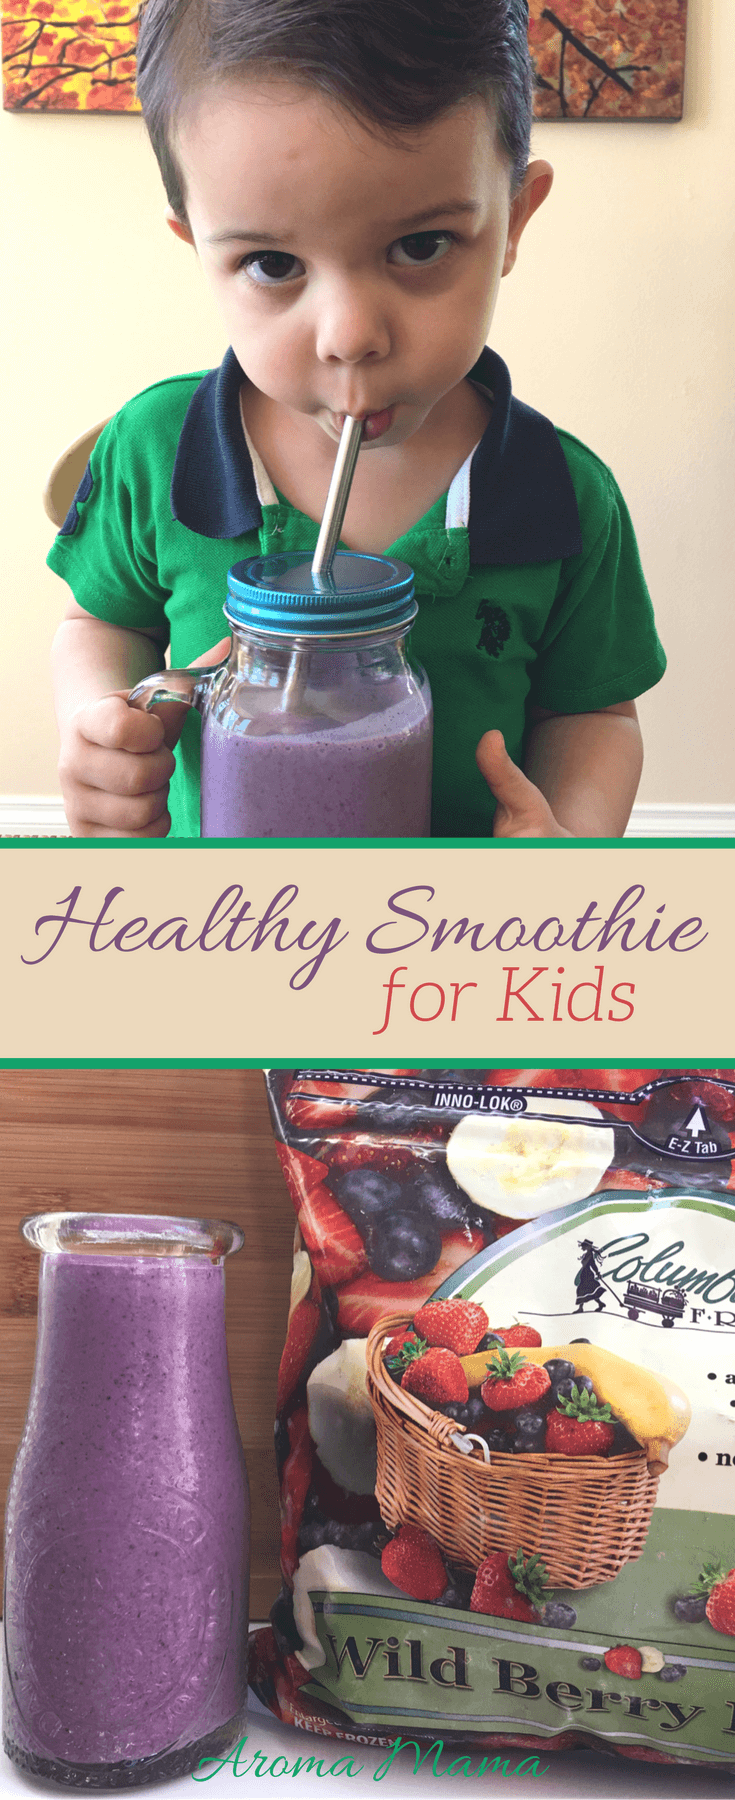 Looking for a healthy smoothie for your kids? This smoothie recipe is delicious, healthy, and kid-approved!